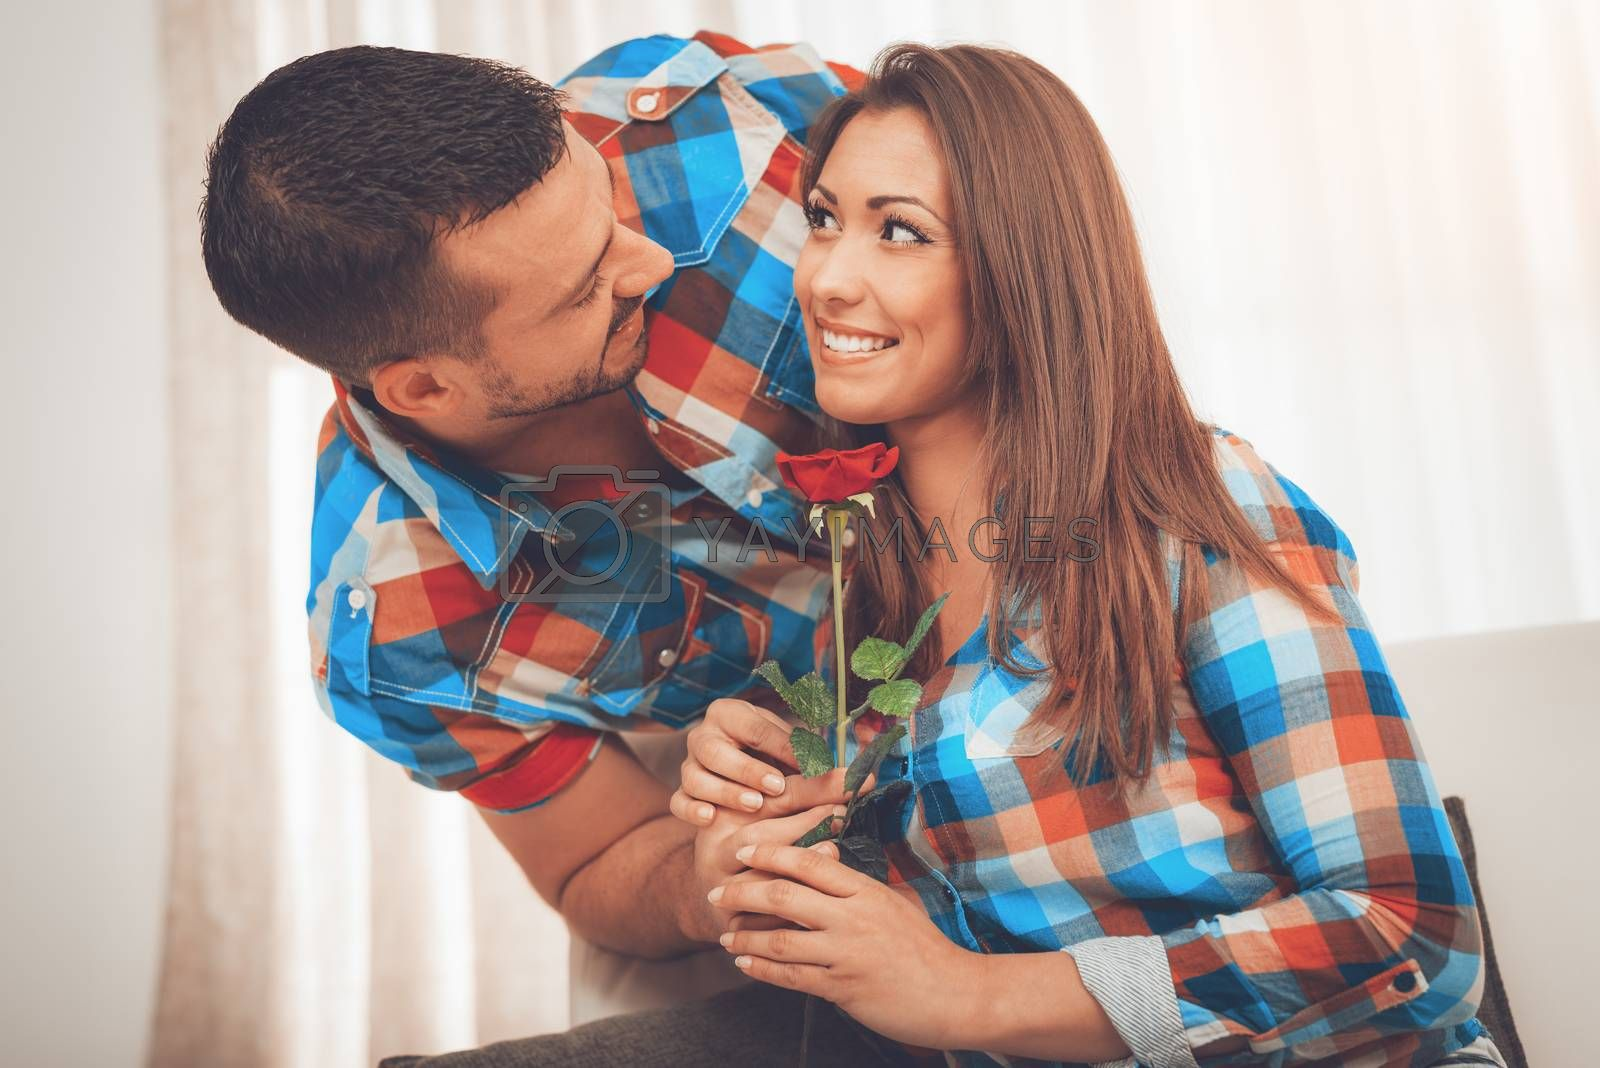 Handsome young man in love give red rose to his girlfriend in an apartment.